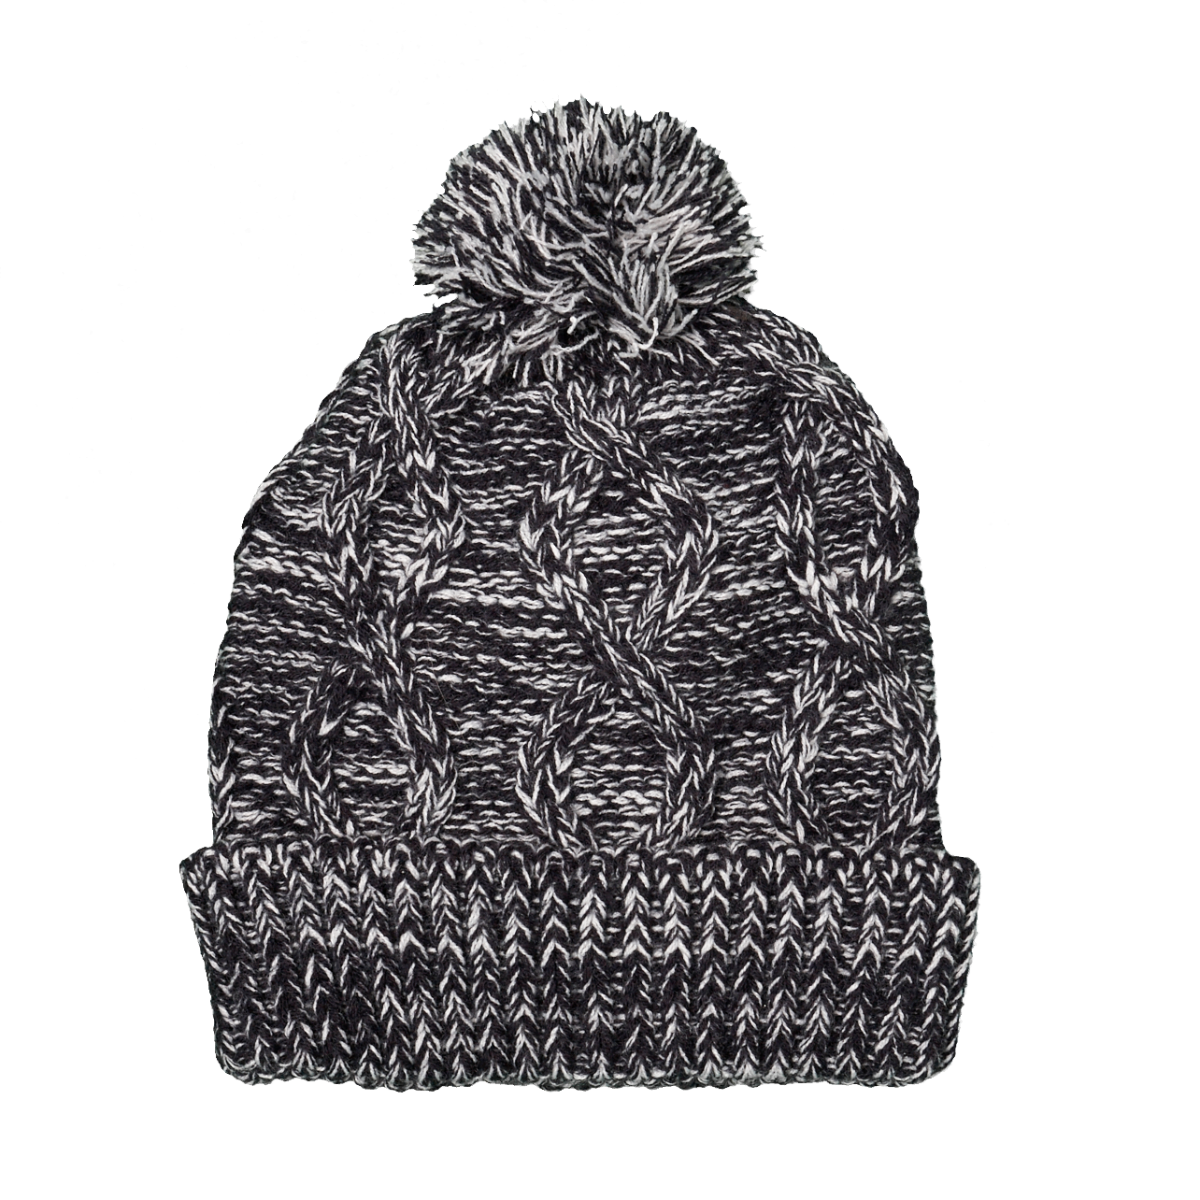 UNISEX MIXED YARN KNITTED HAT